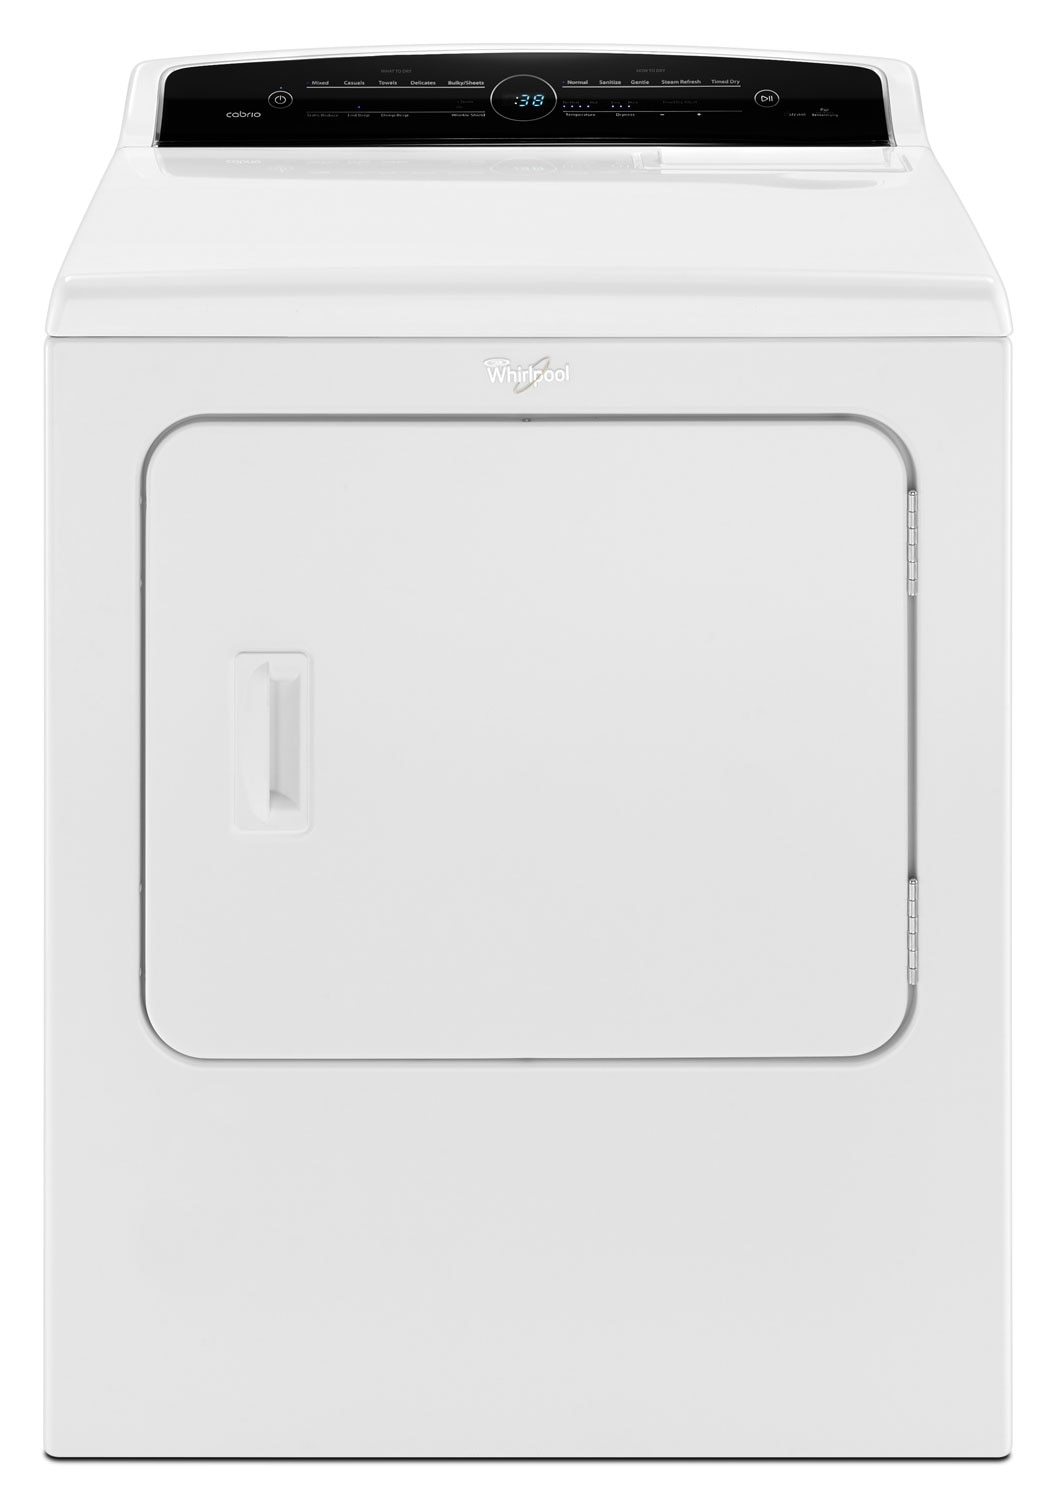 Washers and Dryers - Whirlpool White Gas Dryer (7.0 Cu. Ft.) - WGD7300DW